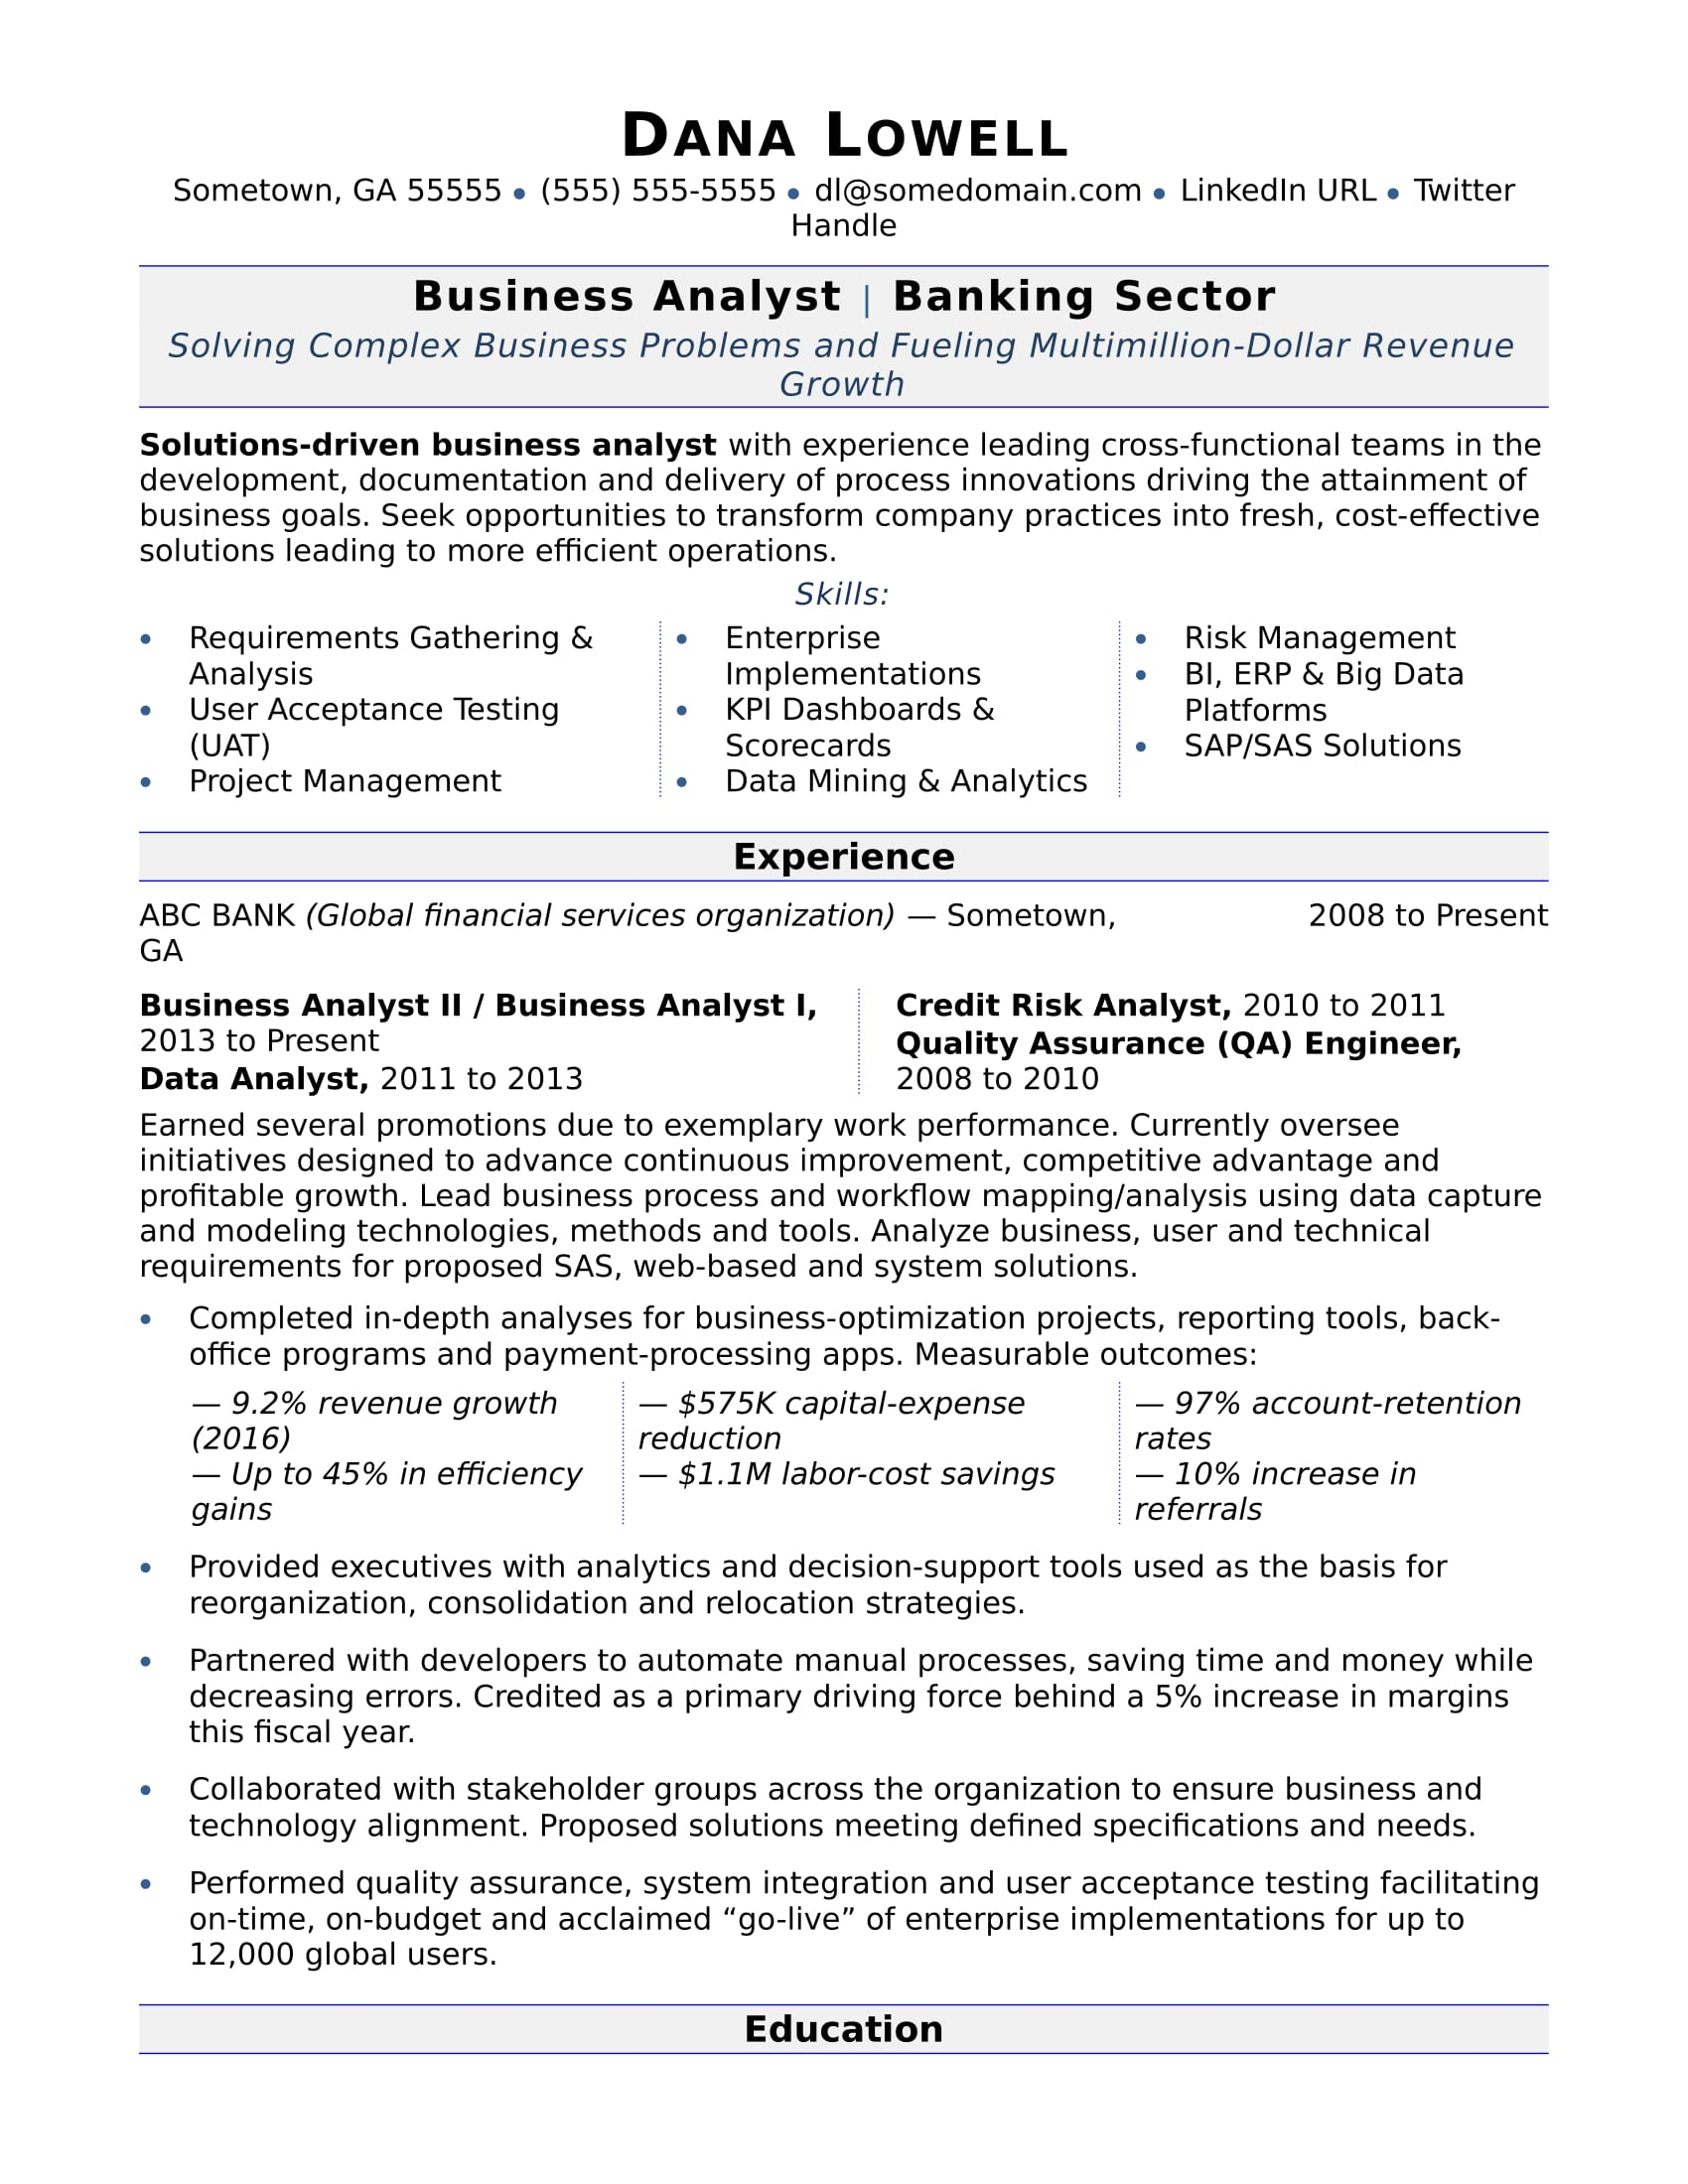 Business analyst resume sample monster business analyst resume sample friedricerecipe Gallery